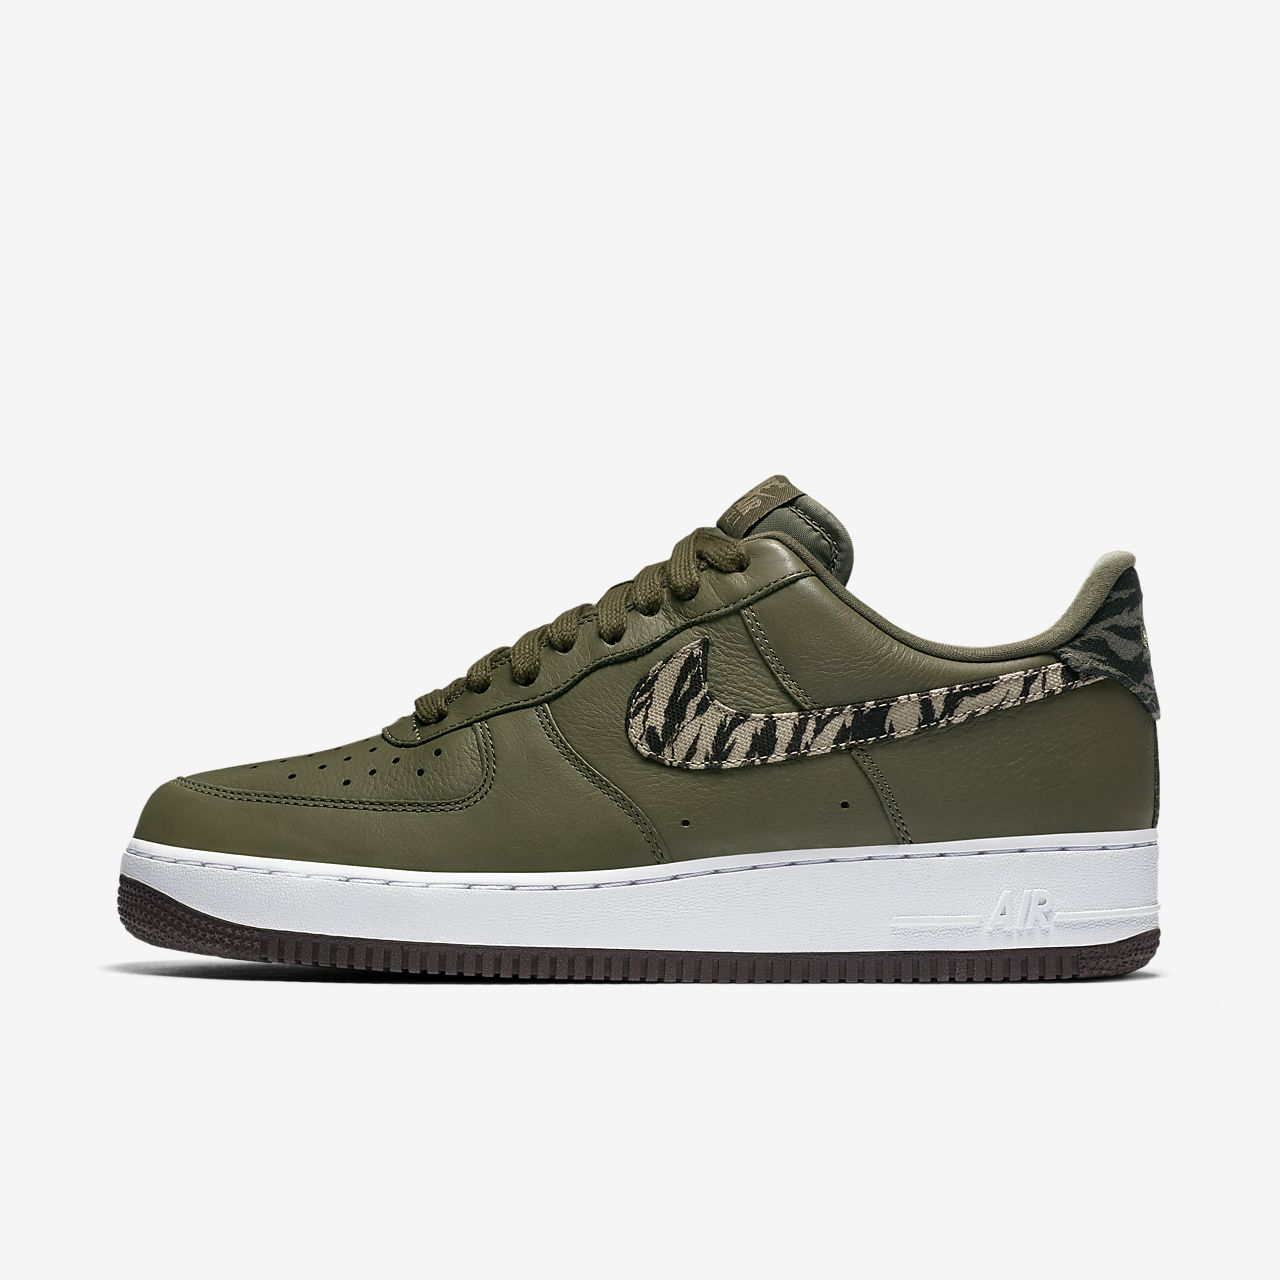 nike air force 1 lv8 velvet nz